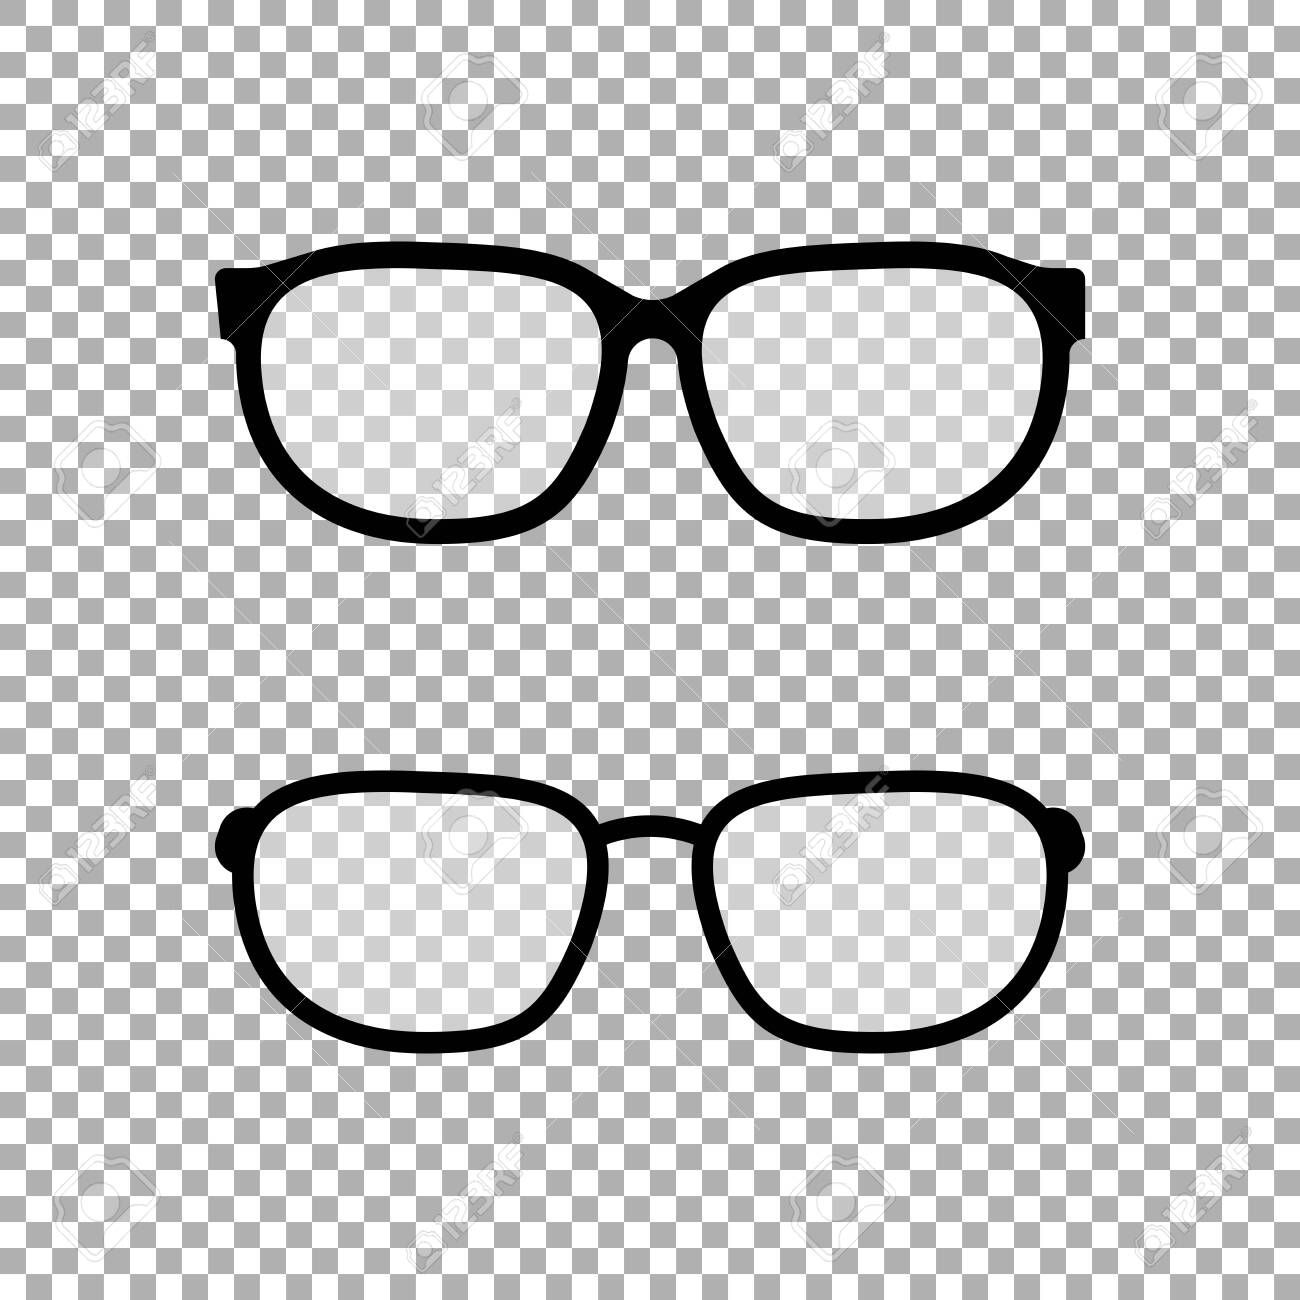 Glasses icon vector isolated on transparent background - 131646584